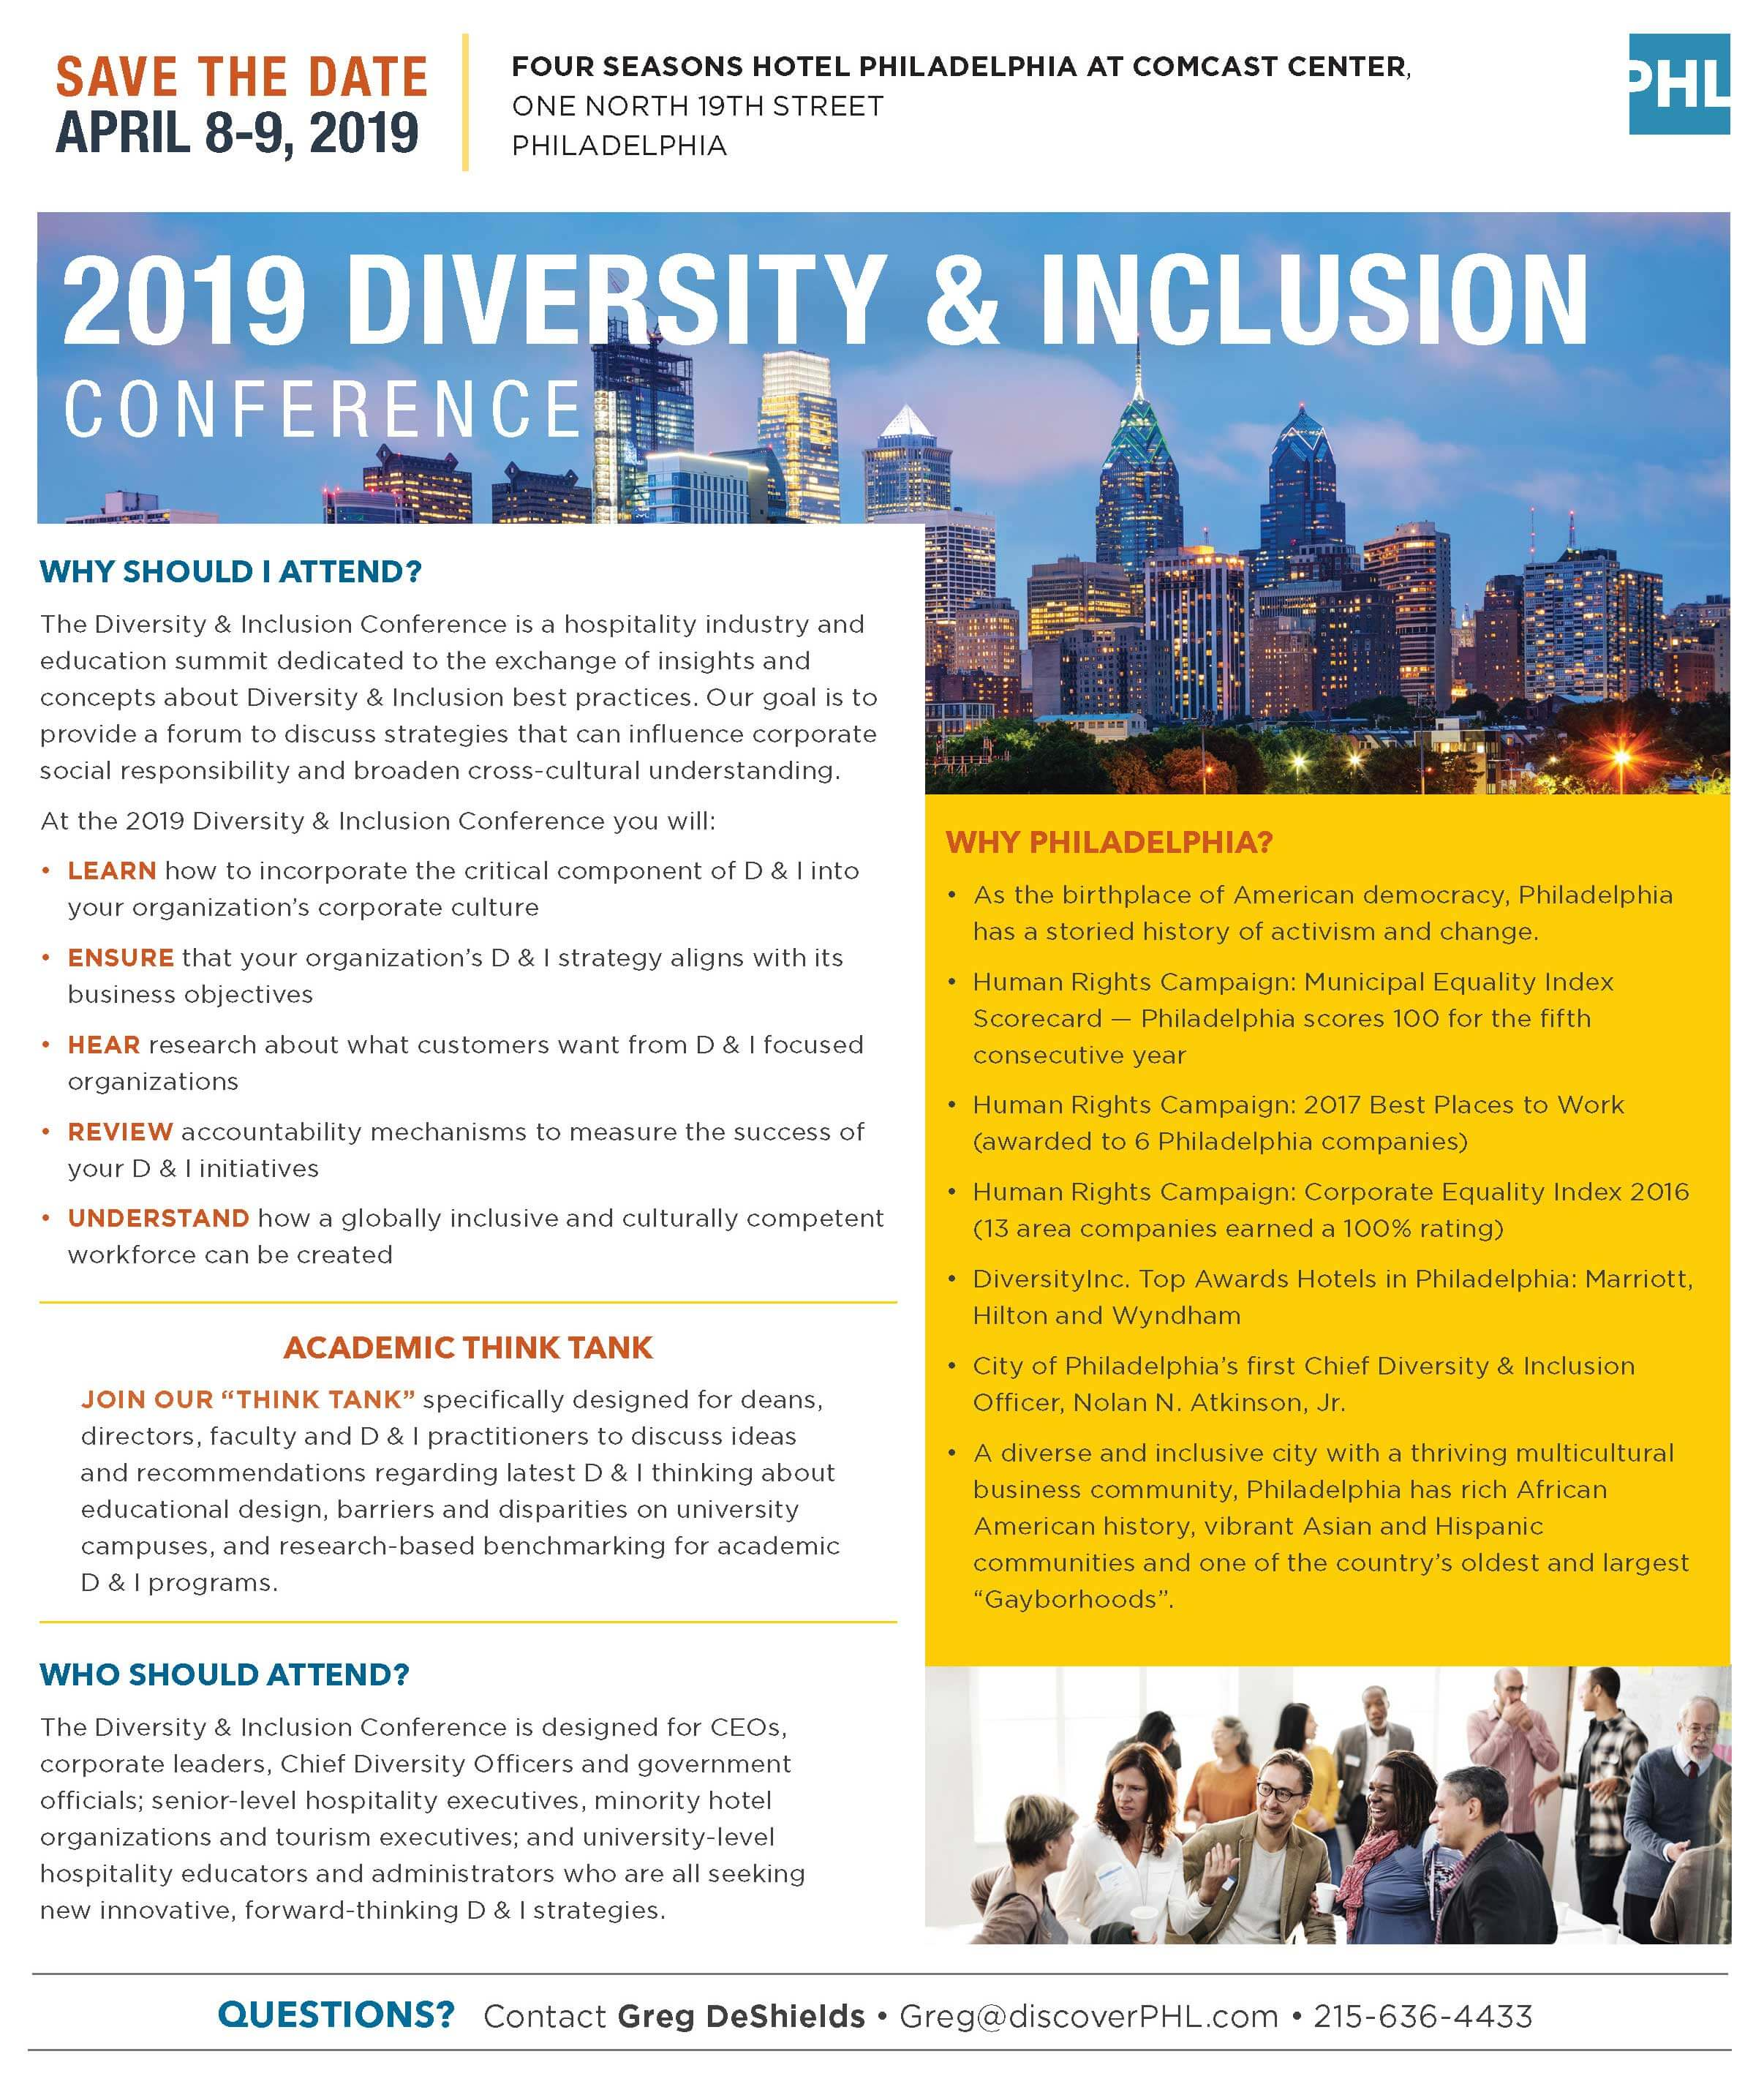 2019 Diversity & Inclusion Conference